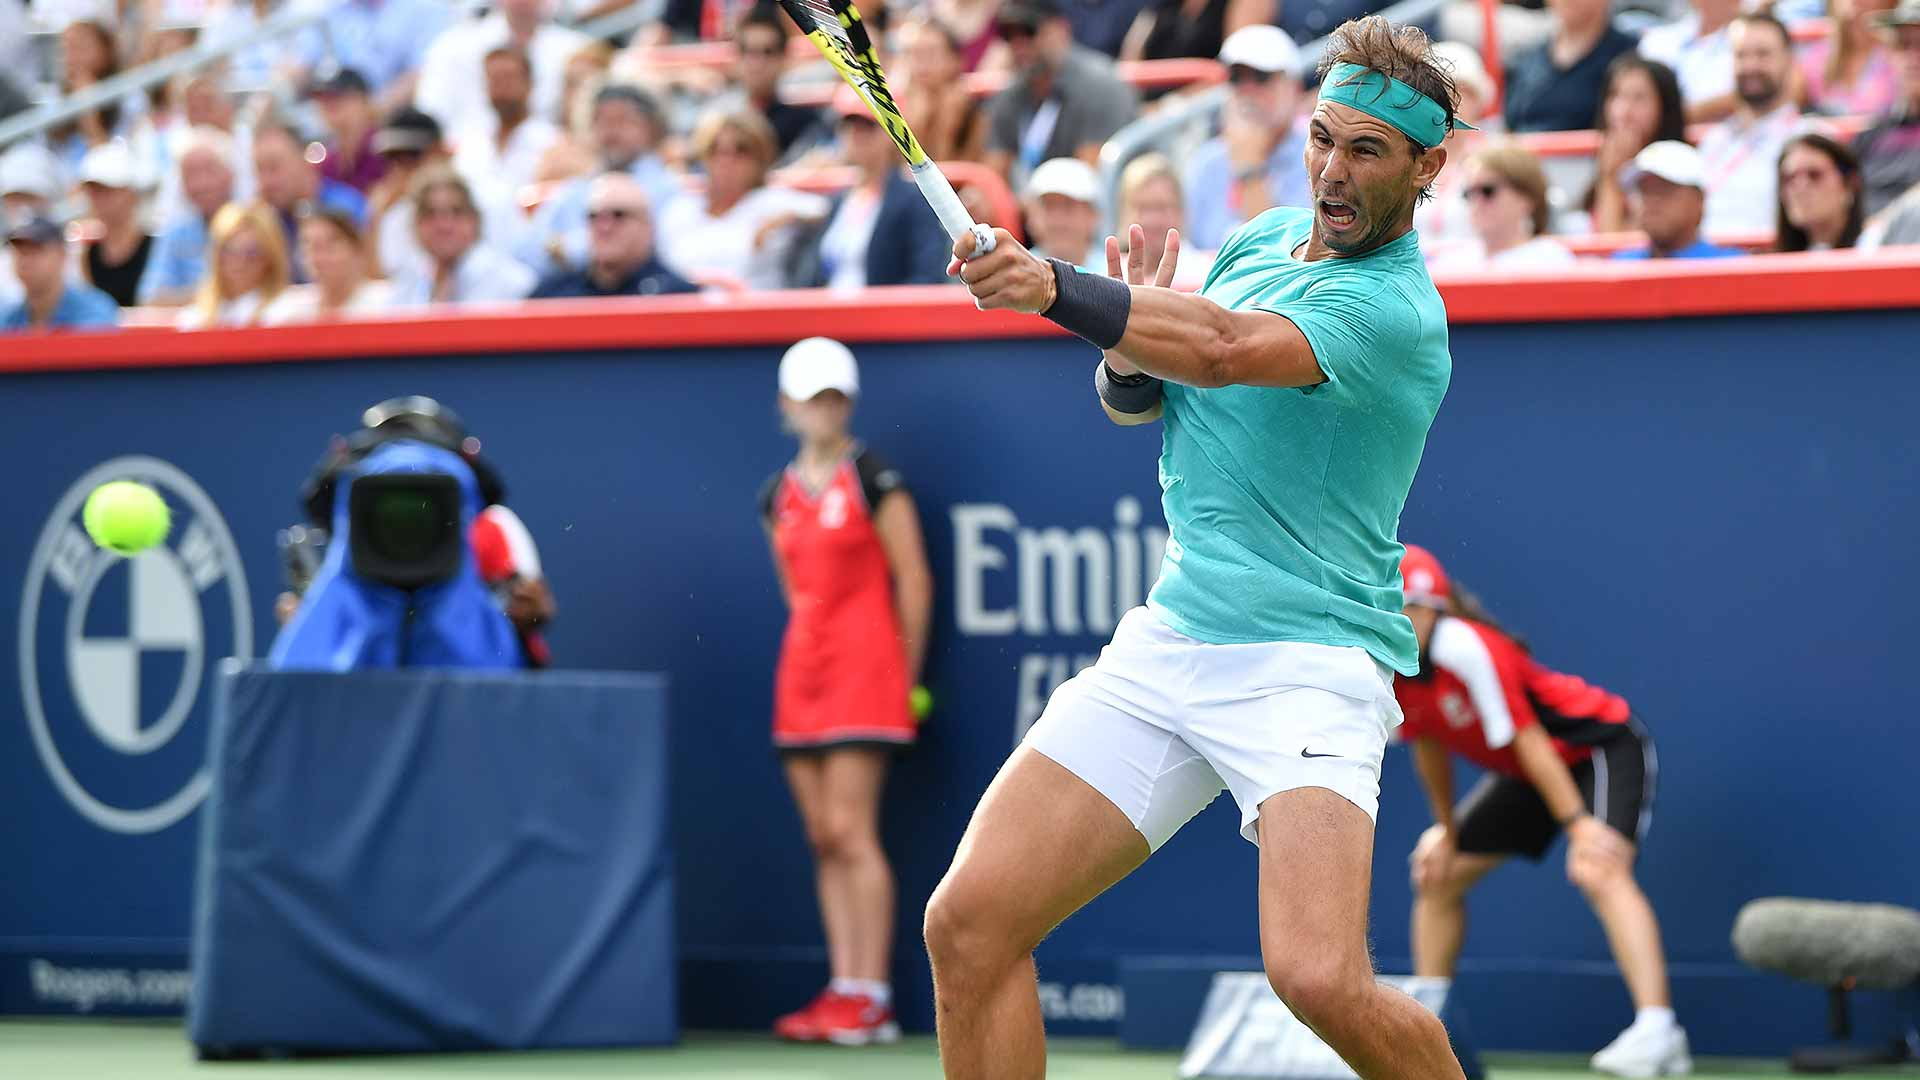 Rafael Nadal wins his 35th ATP Masters 1000 title on Sunday in Montreal